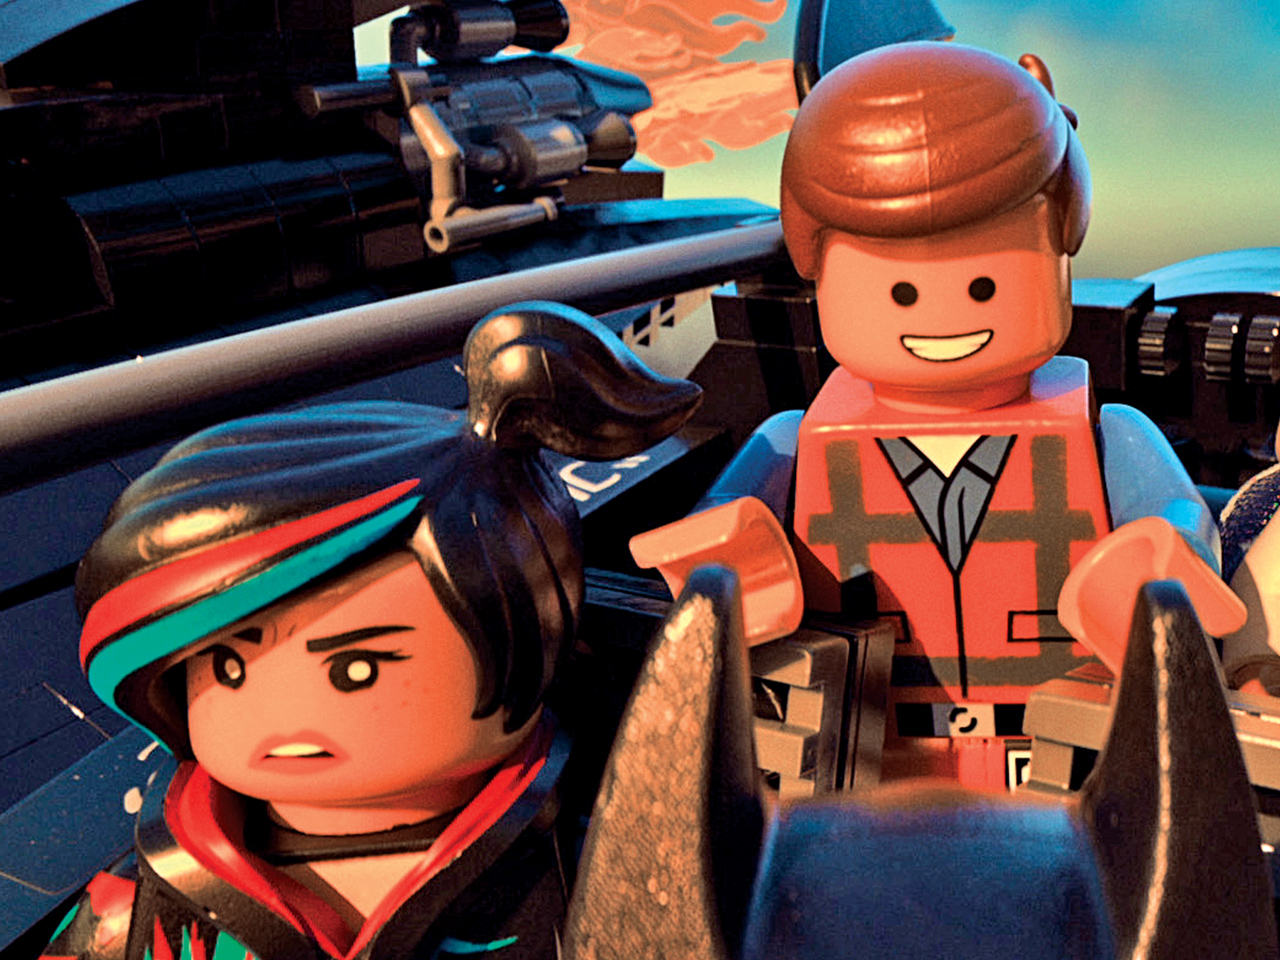 A still from the kids' animated movie The LEGO movie